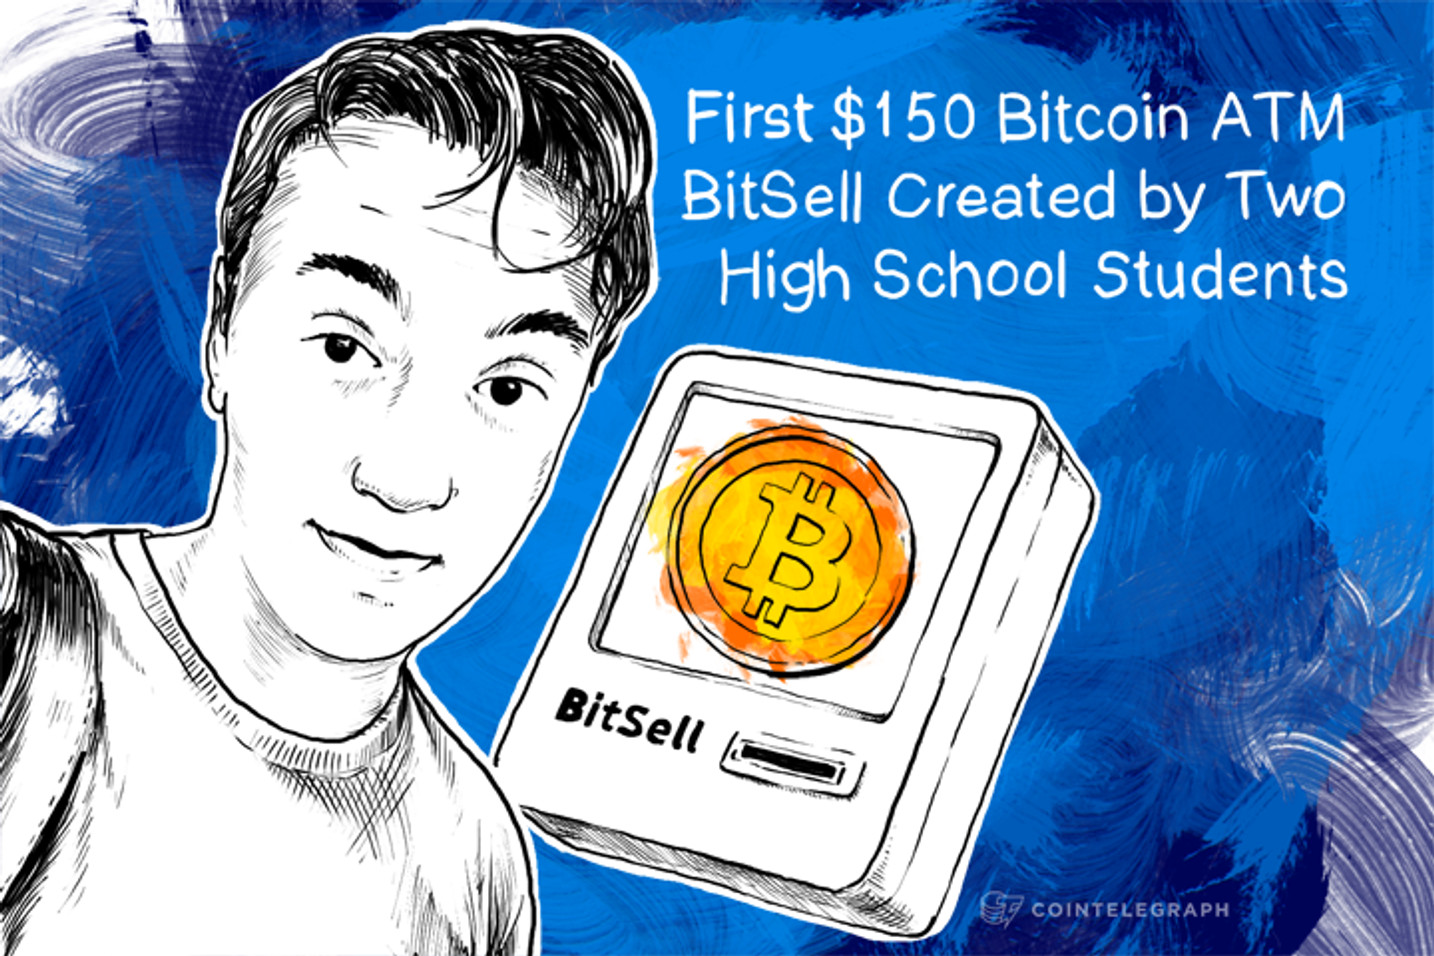 First $150 Bitcoin ATM BitSell Created by Two High School Students